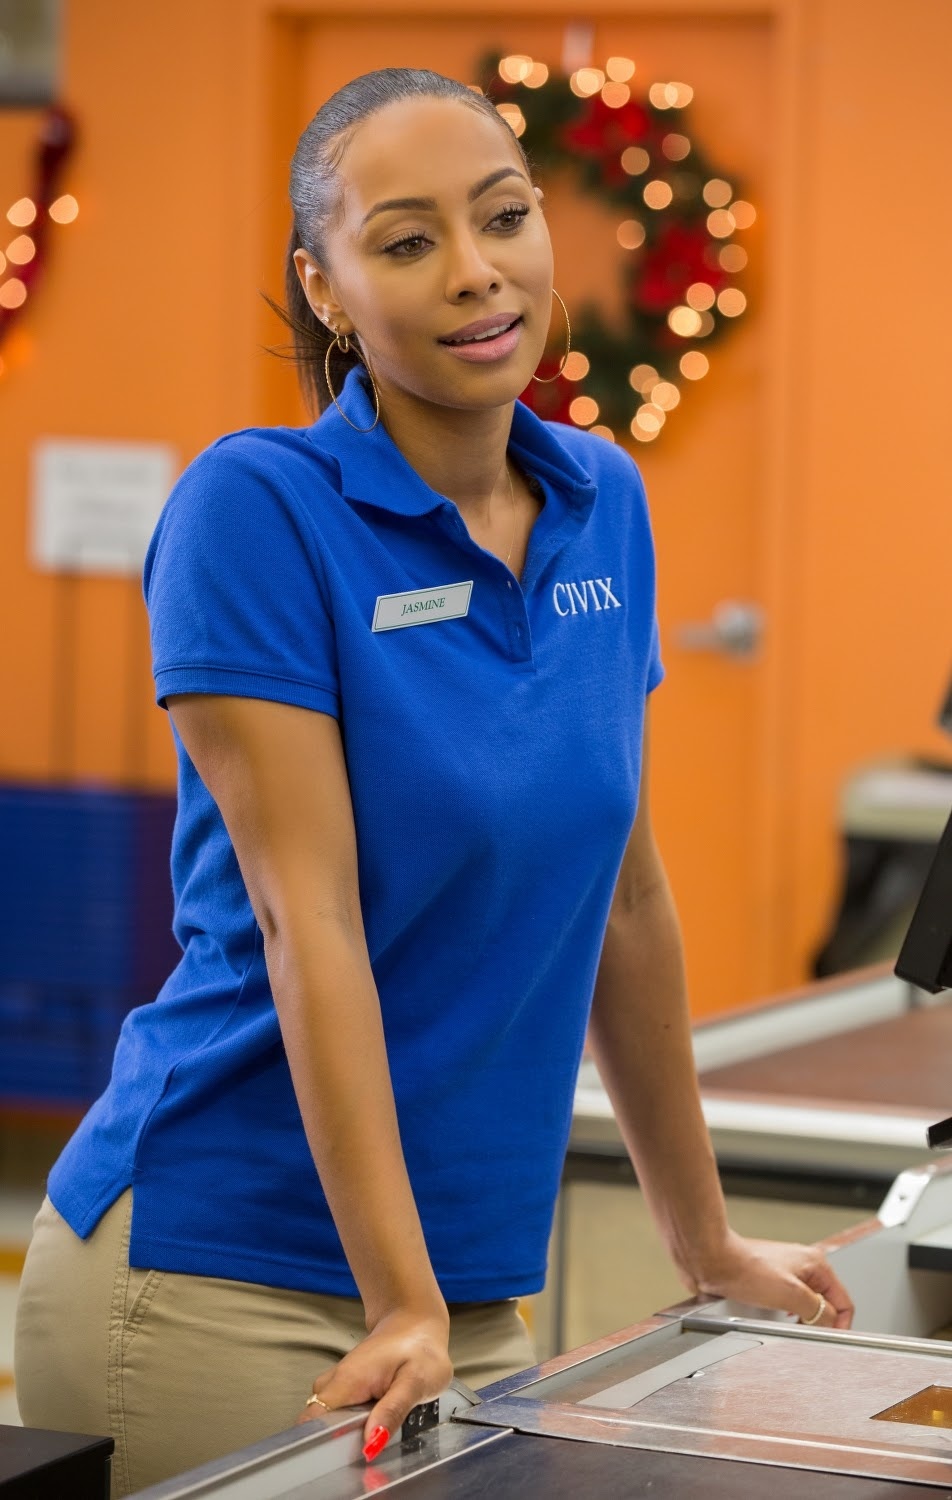 Keri Hilson stars as Jasmine in ALMOST CHRISTMAS. (Photo by Quantrell D. Colbert / courtesy of Universal Pictures).